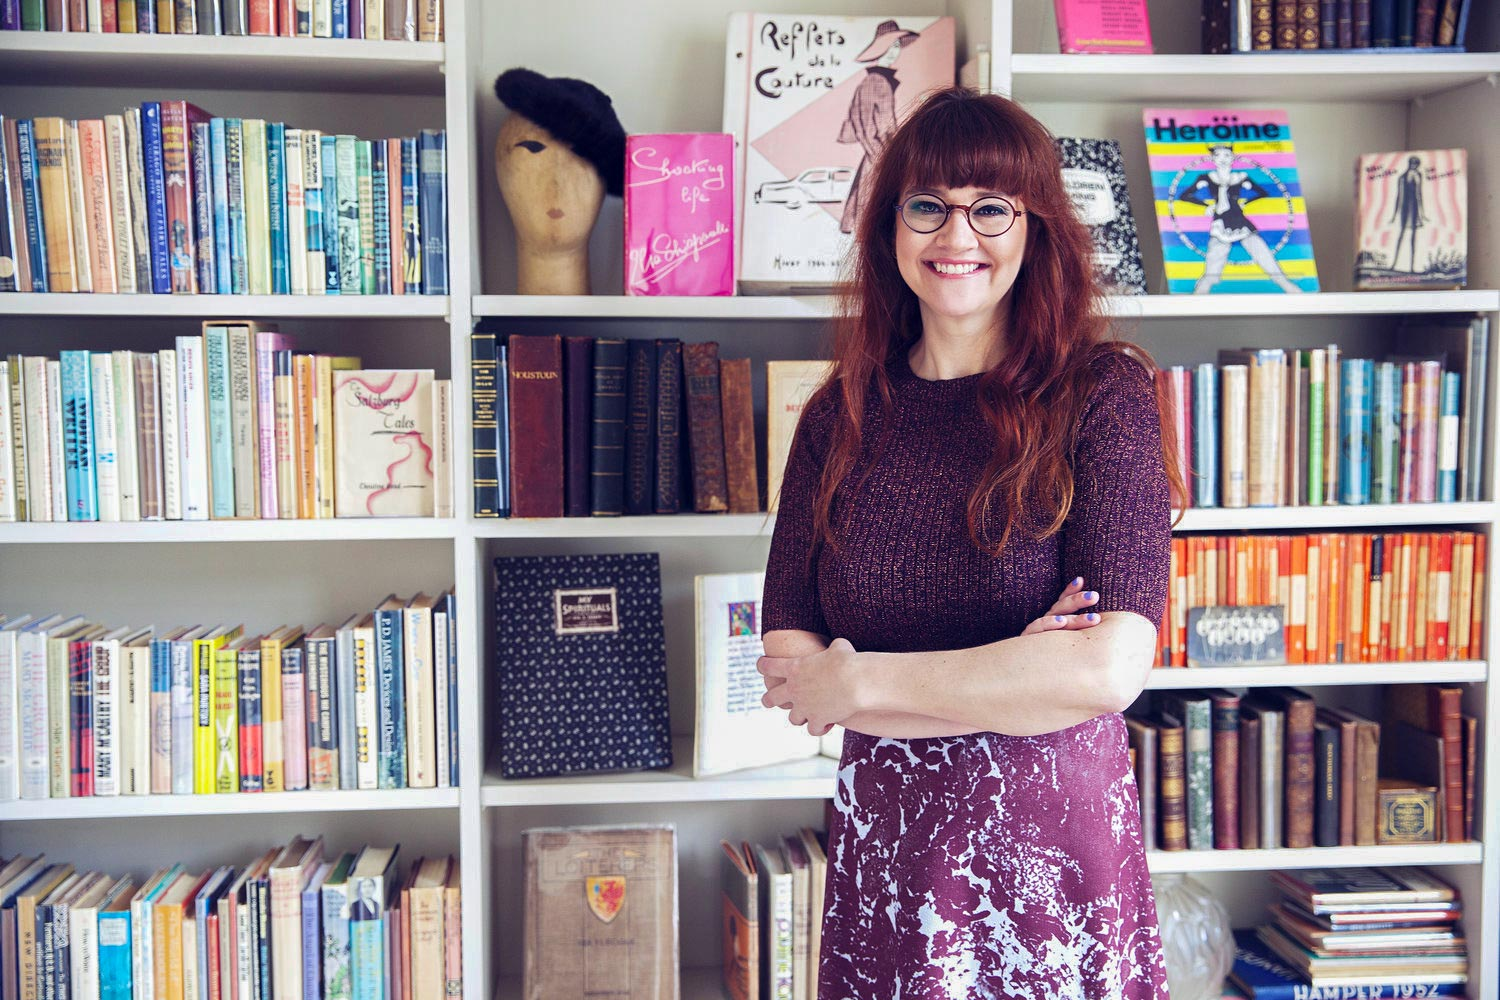 Writer A.N. Devers has loved books for as long as she can remember and was particularly captivated by the literary lore she found at UVA. Now, she is a rare book dealer making a mark with a new shop focused on female authors.